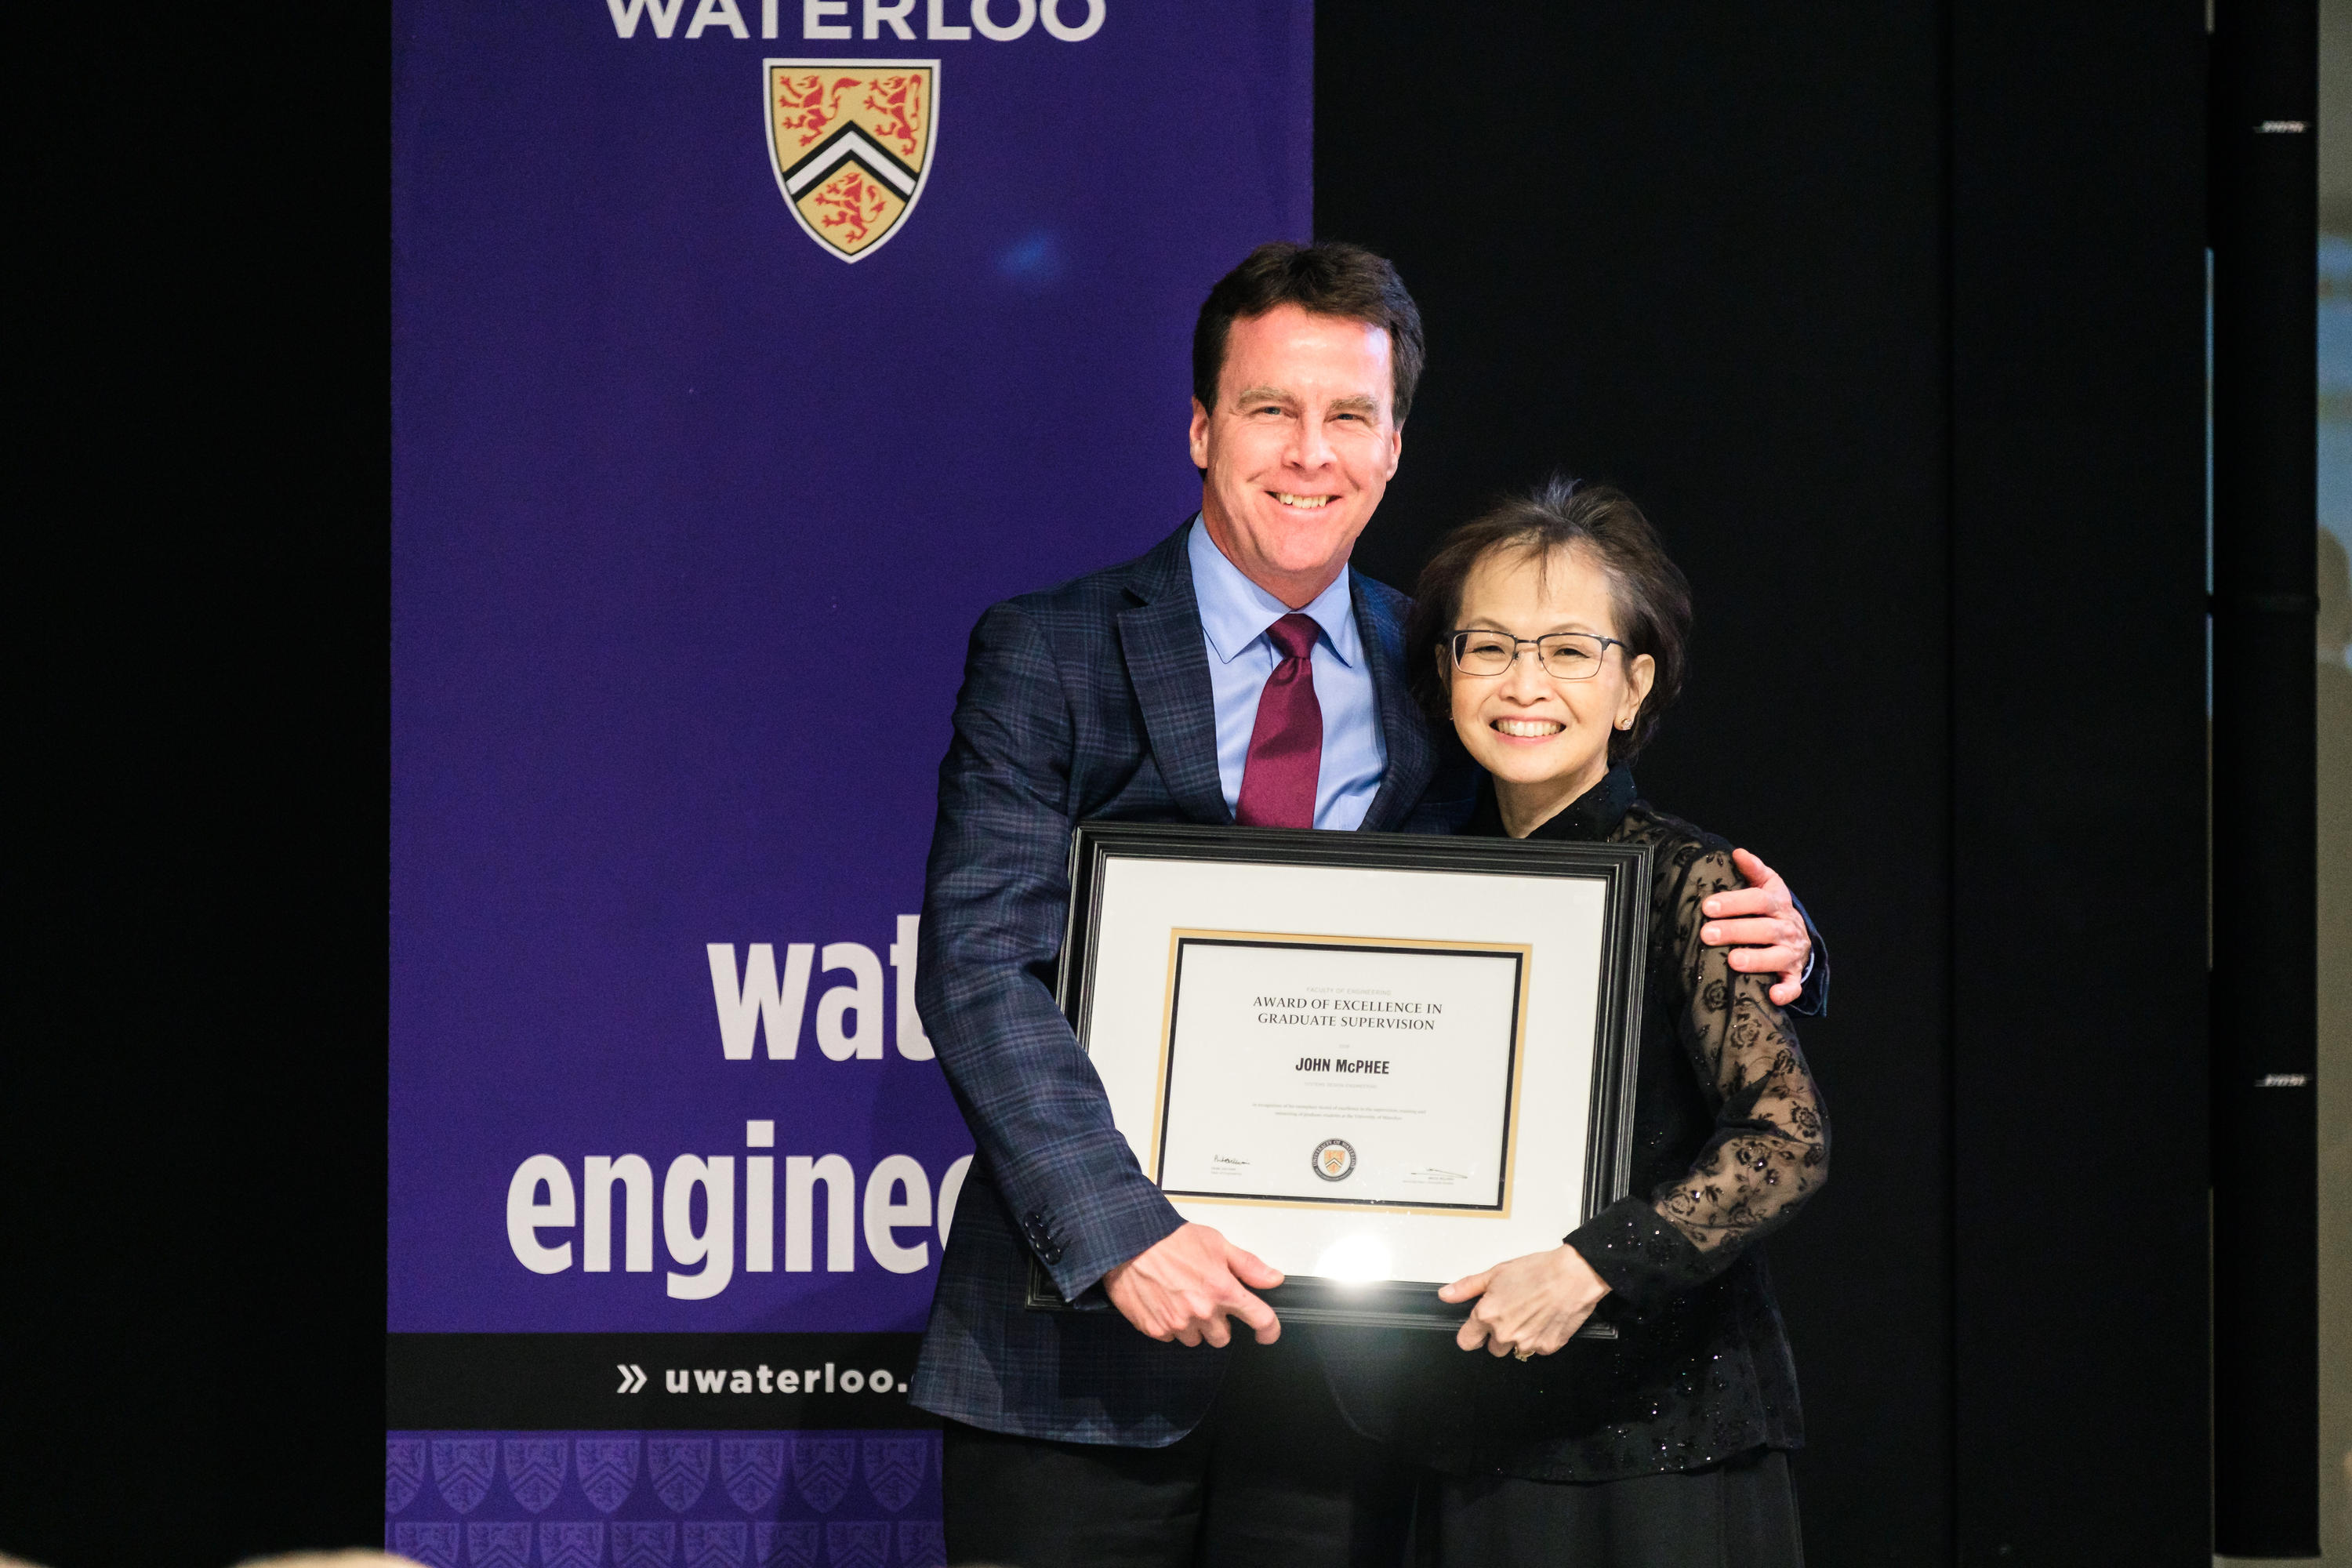 John McPhee receives Waterloo Engineering awards